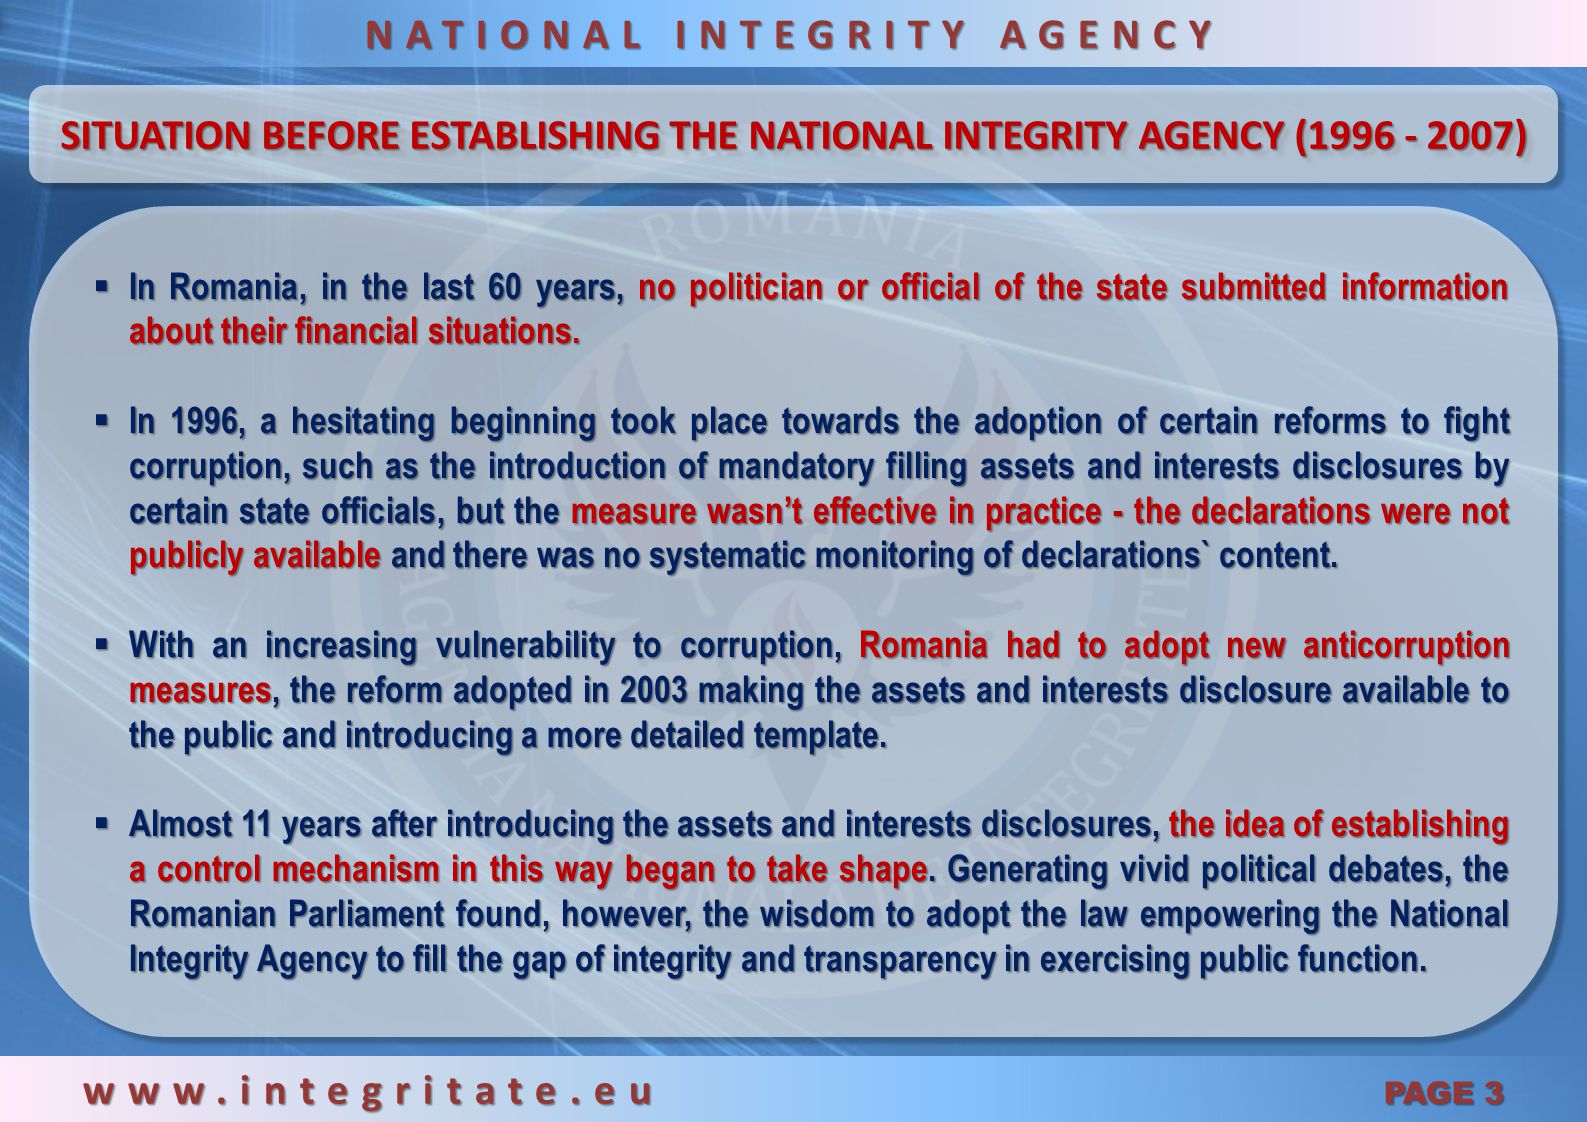 NATIONAL INTEGRITY AGENCY www.integritate.eu PAGE 3